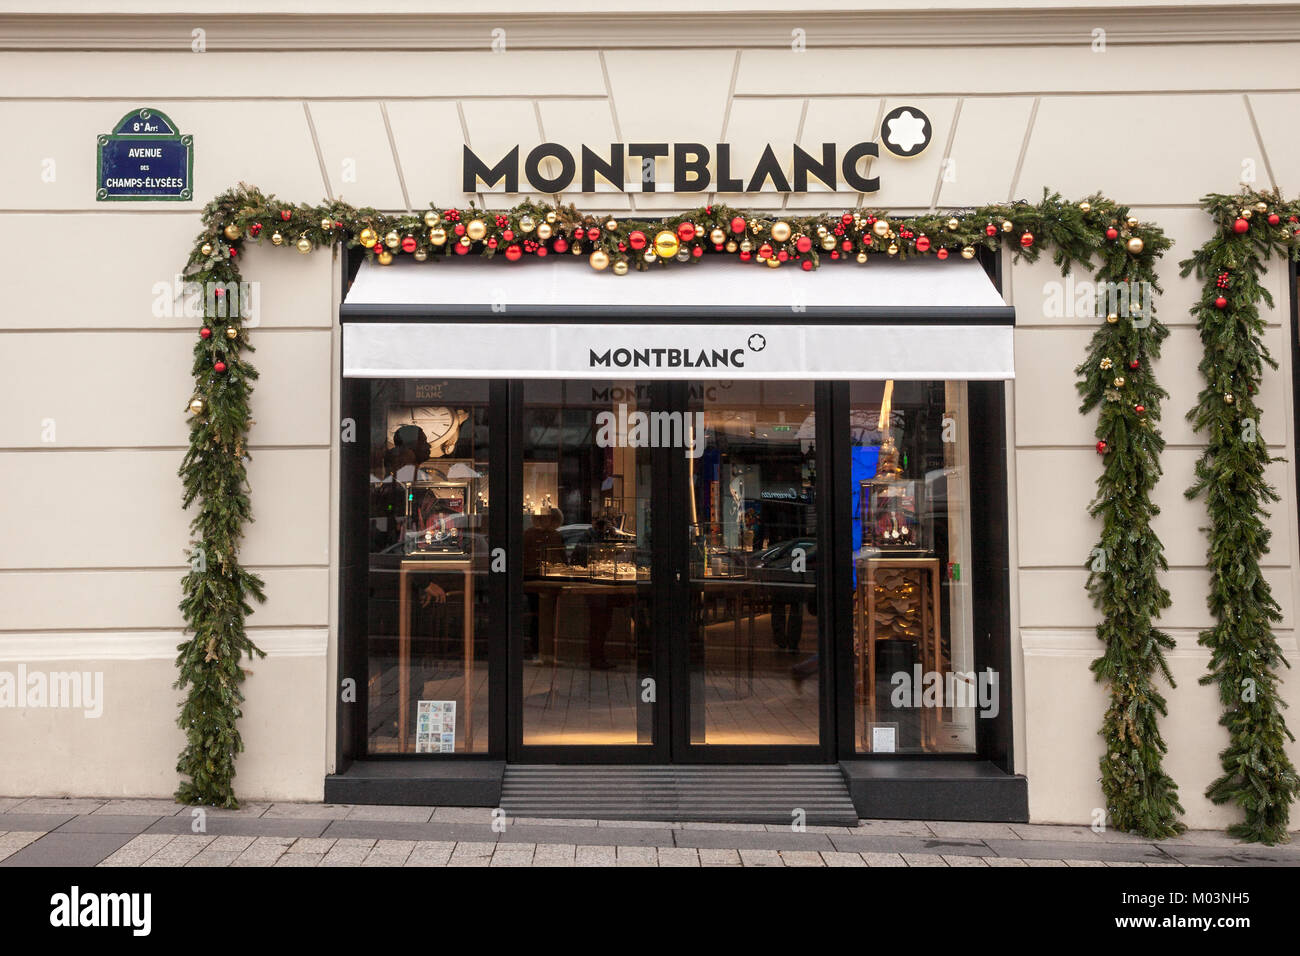 PARIS, FRANCE - DECEMBER 20, 2017: Montblanc logo on their main shop on Champs Elysee avenue. Montblanc is a German - Stock Image